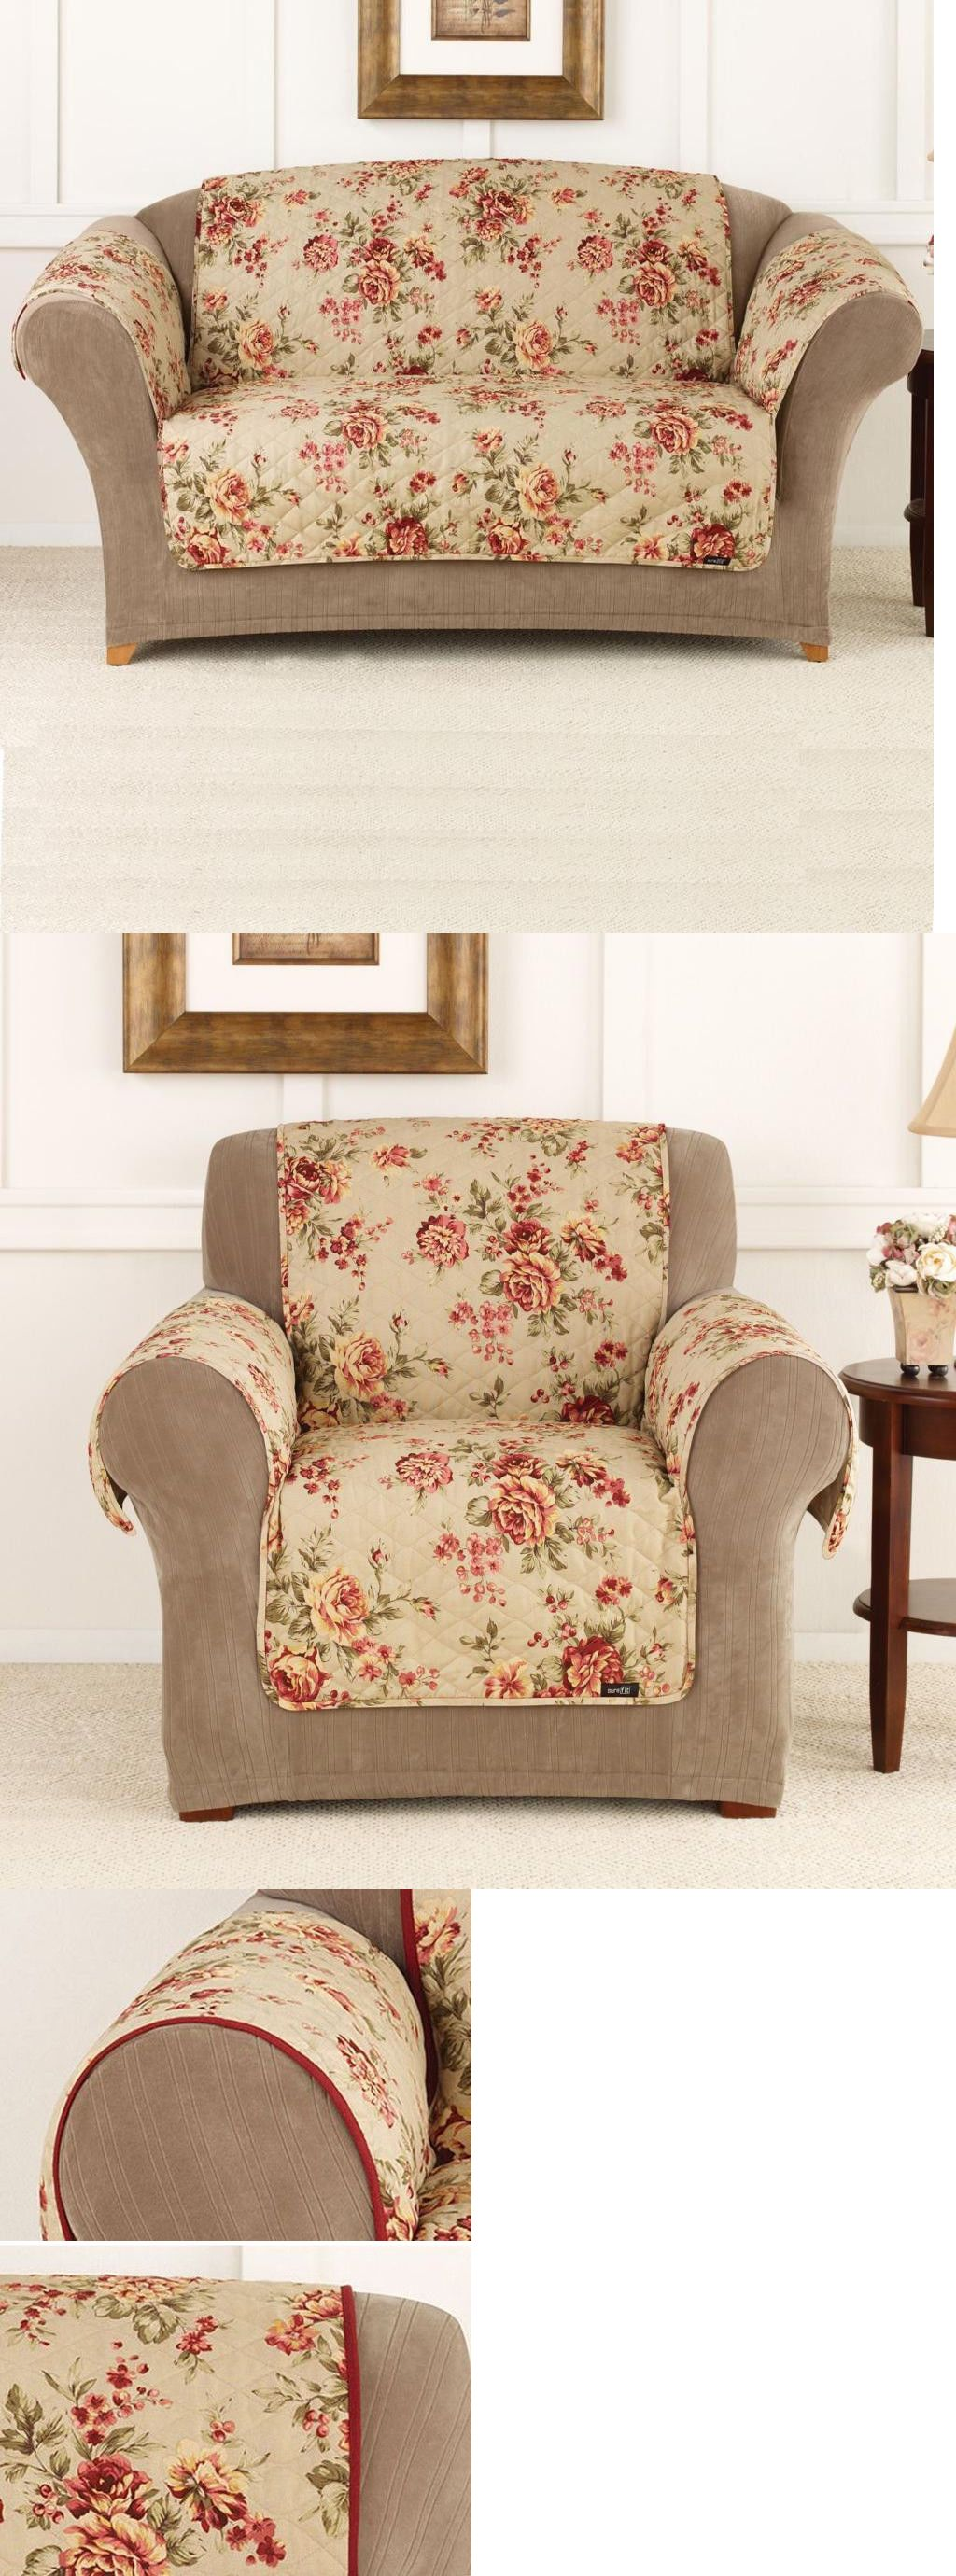 Slipcovers Pet Furniture Covers Floral Print Throw Sofa